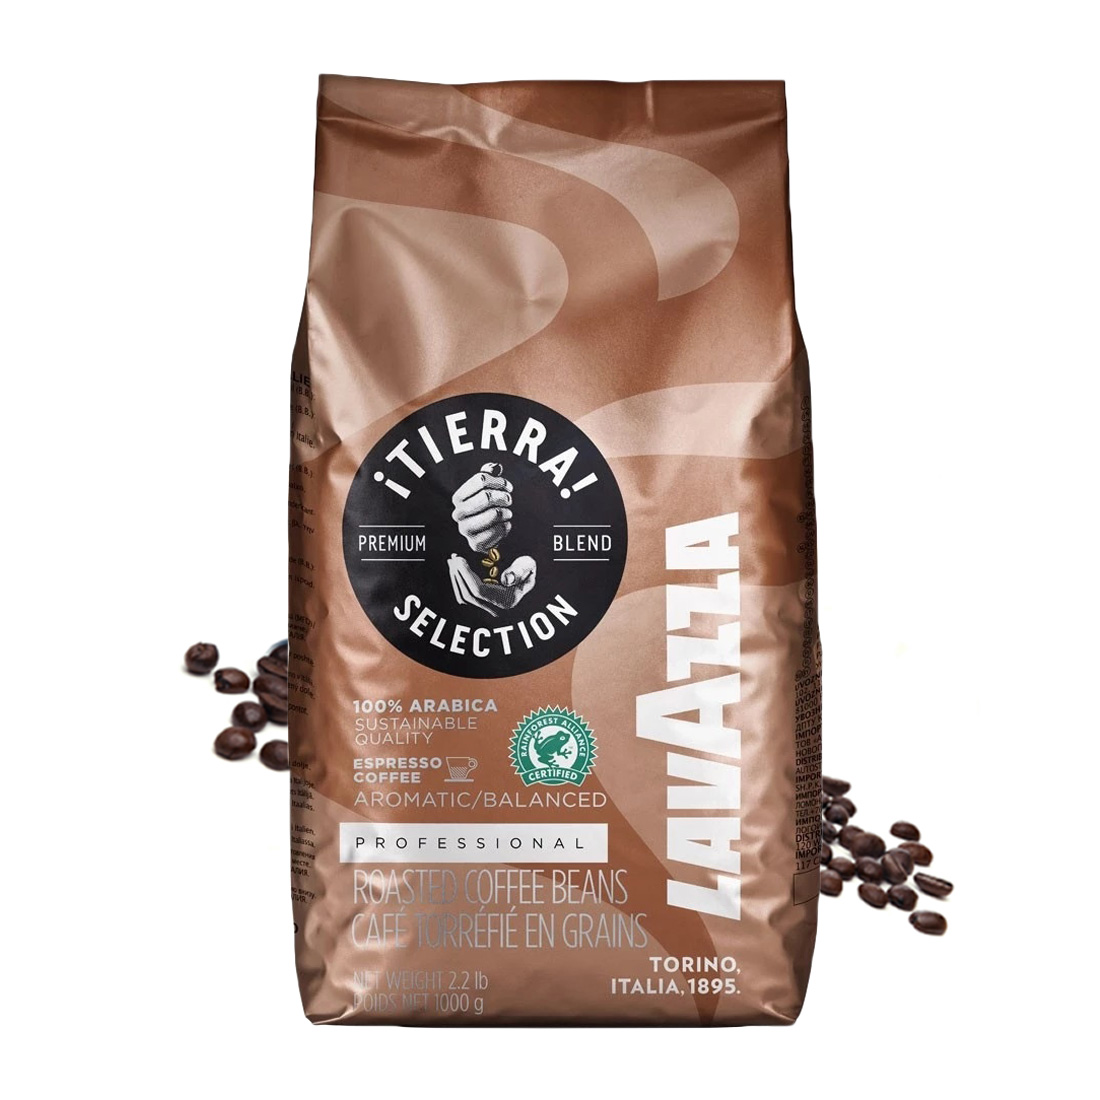 Lavazza Tierra Selection cafea boabe 1 kg